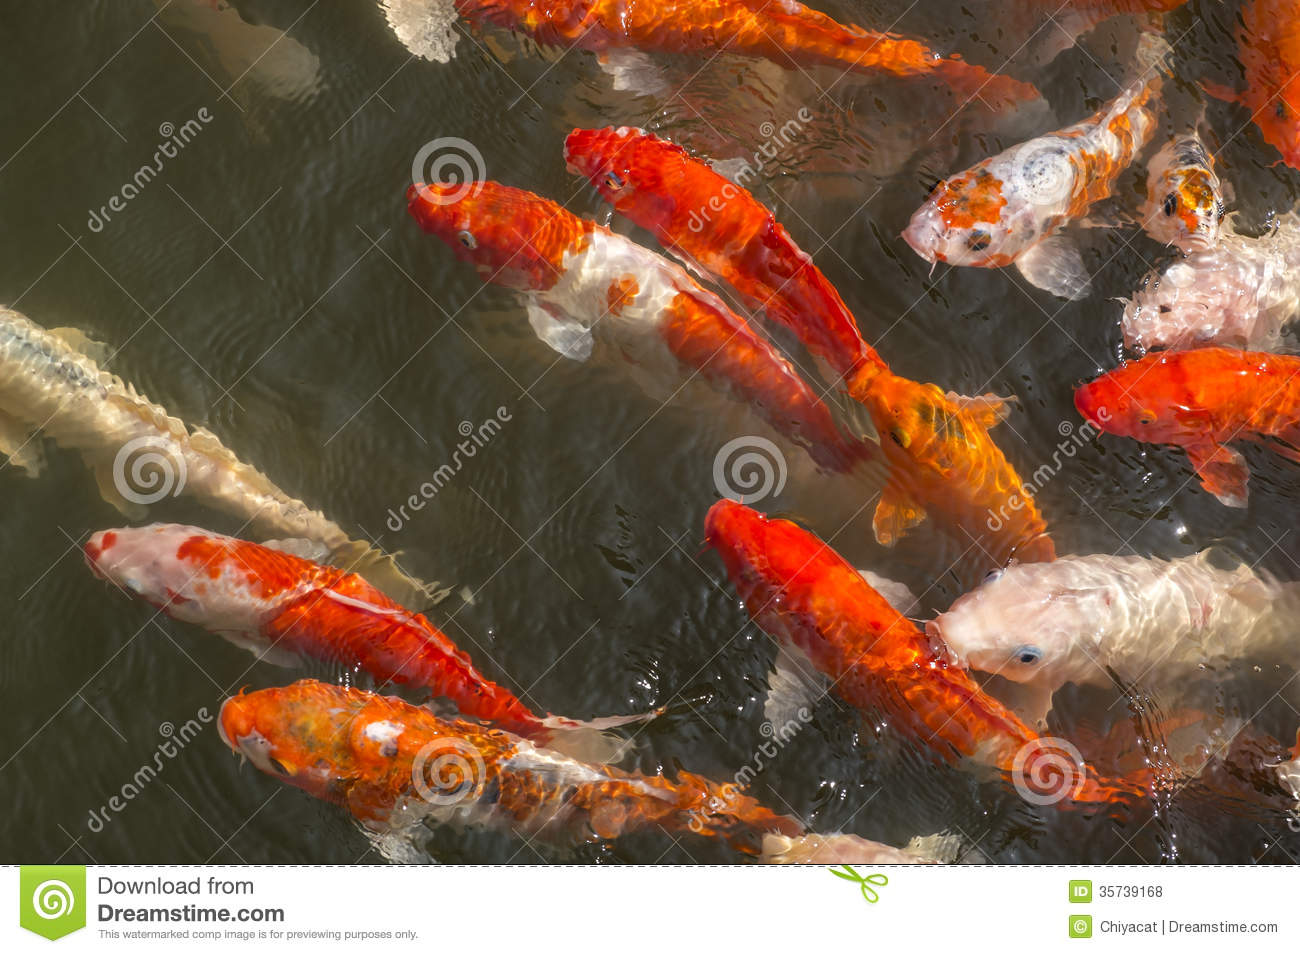 Colorful Coy Fish Swimming In A Pond Stock Photo - Image of black ...